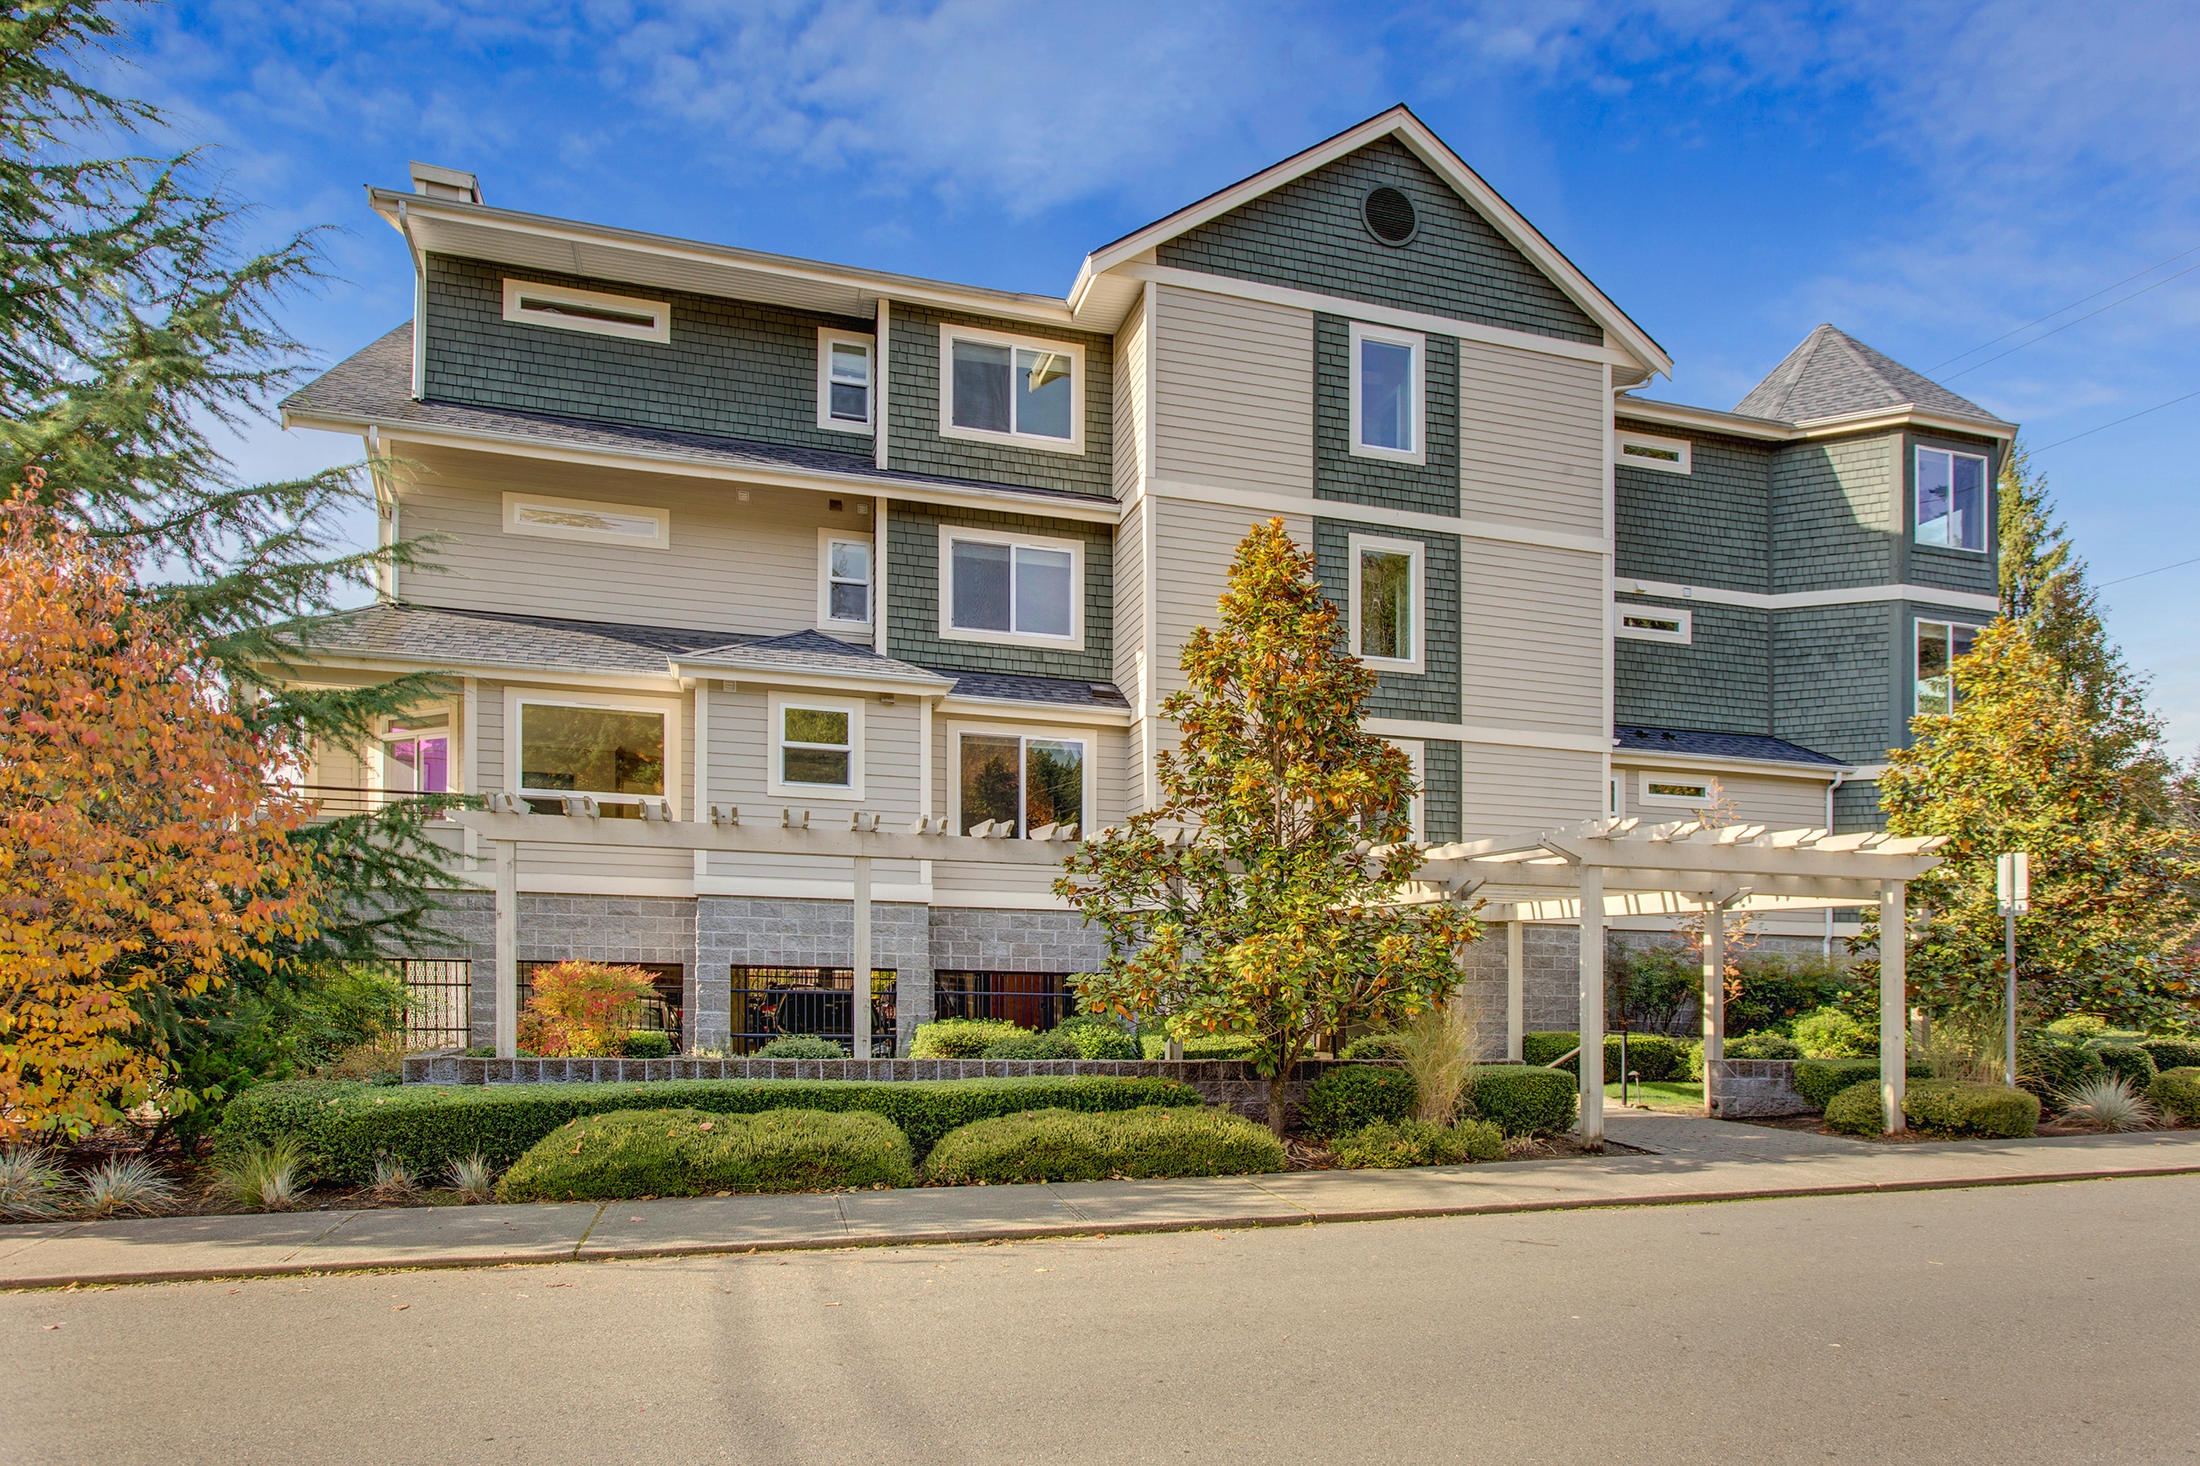 485 E Sunset Wy #1C, Issaquah $520,000